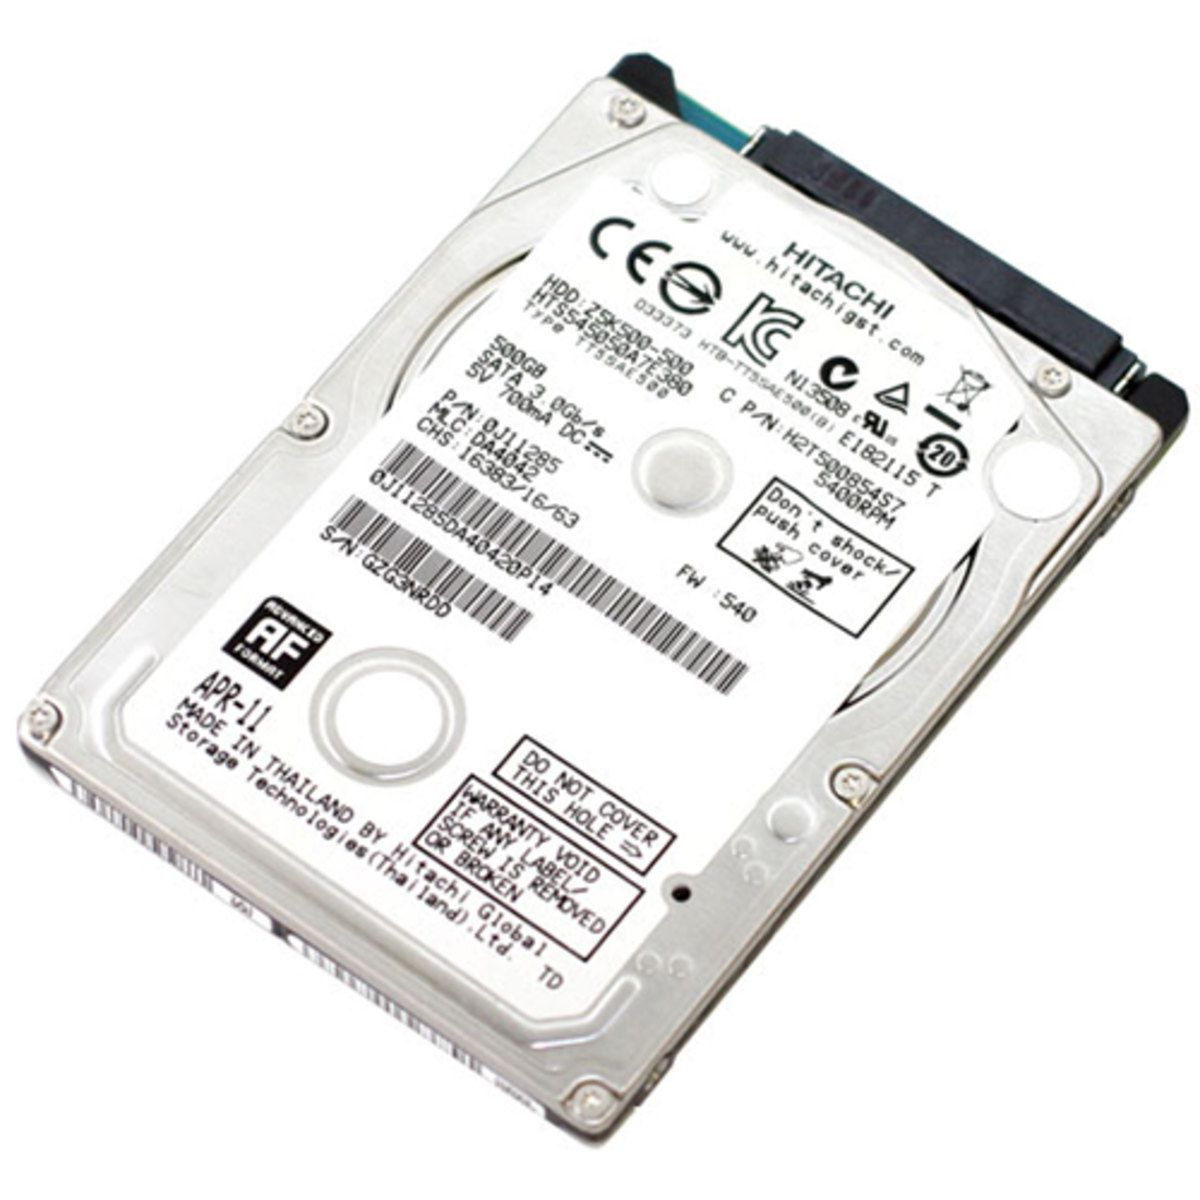 HD 500GB NOTEBOOK HITACHI HGTS SLIM SATA II